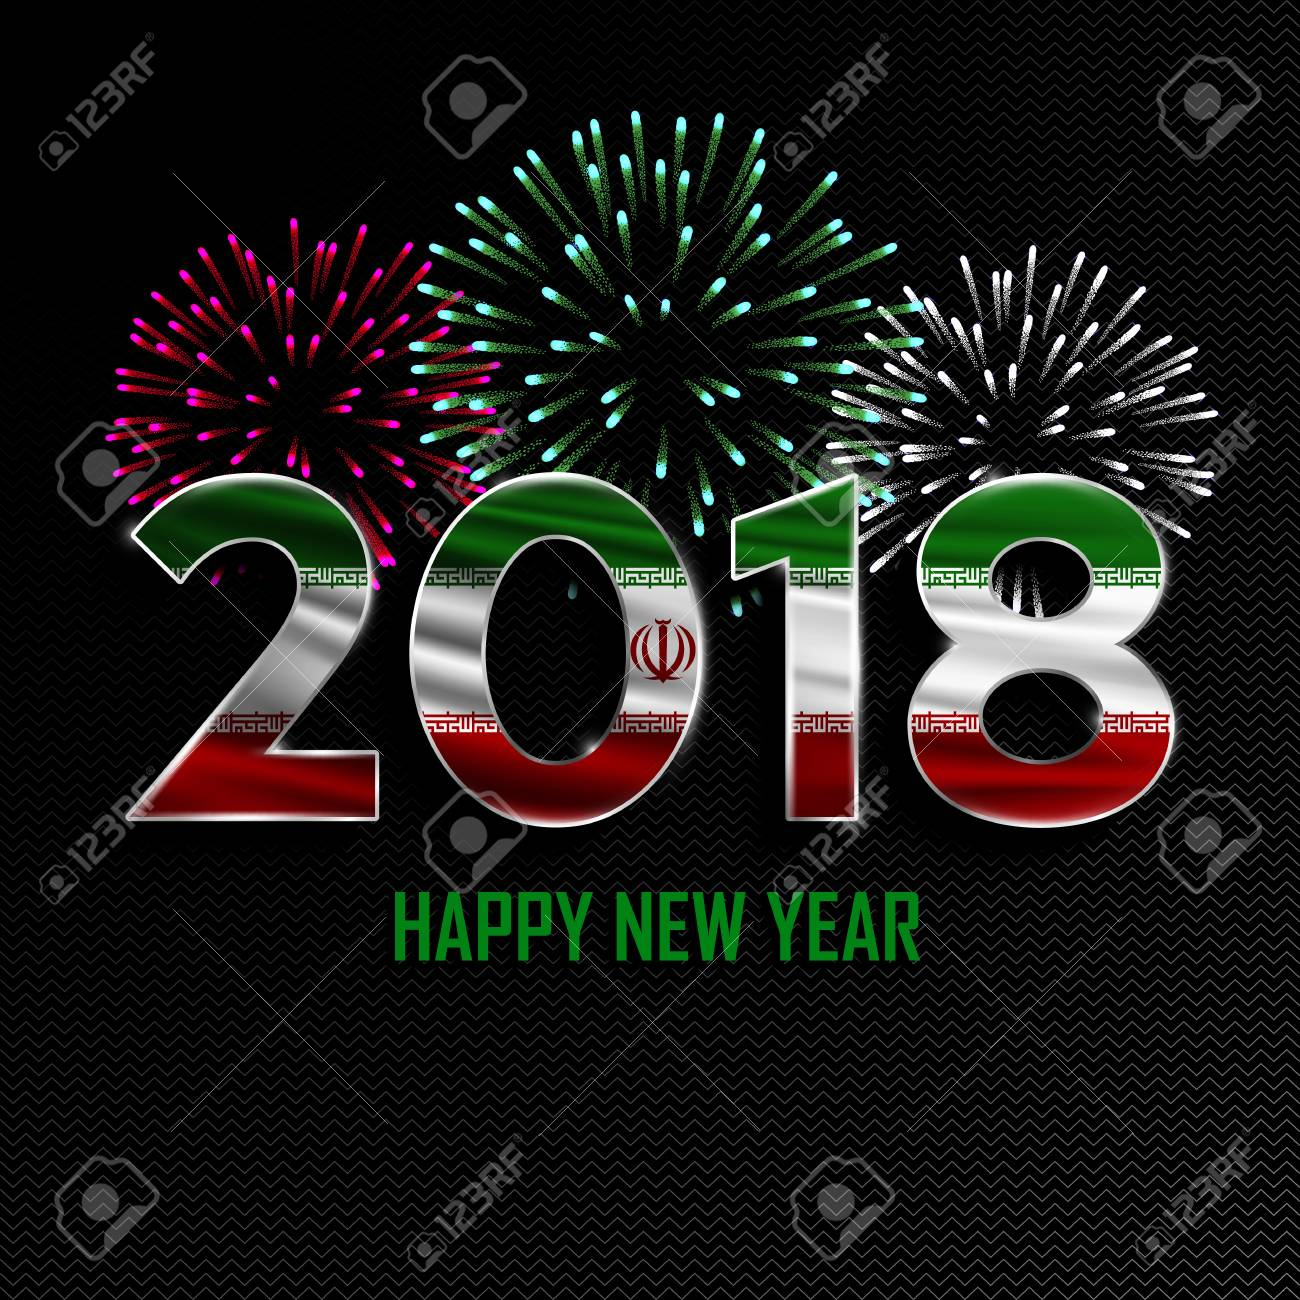 happy new year and merry christmas 2018 new year background with national flag of iran